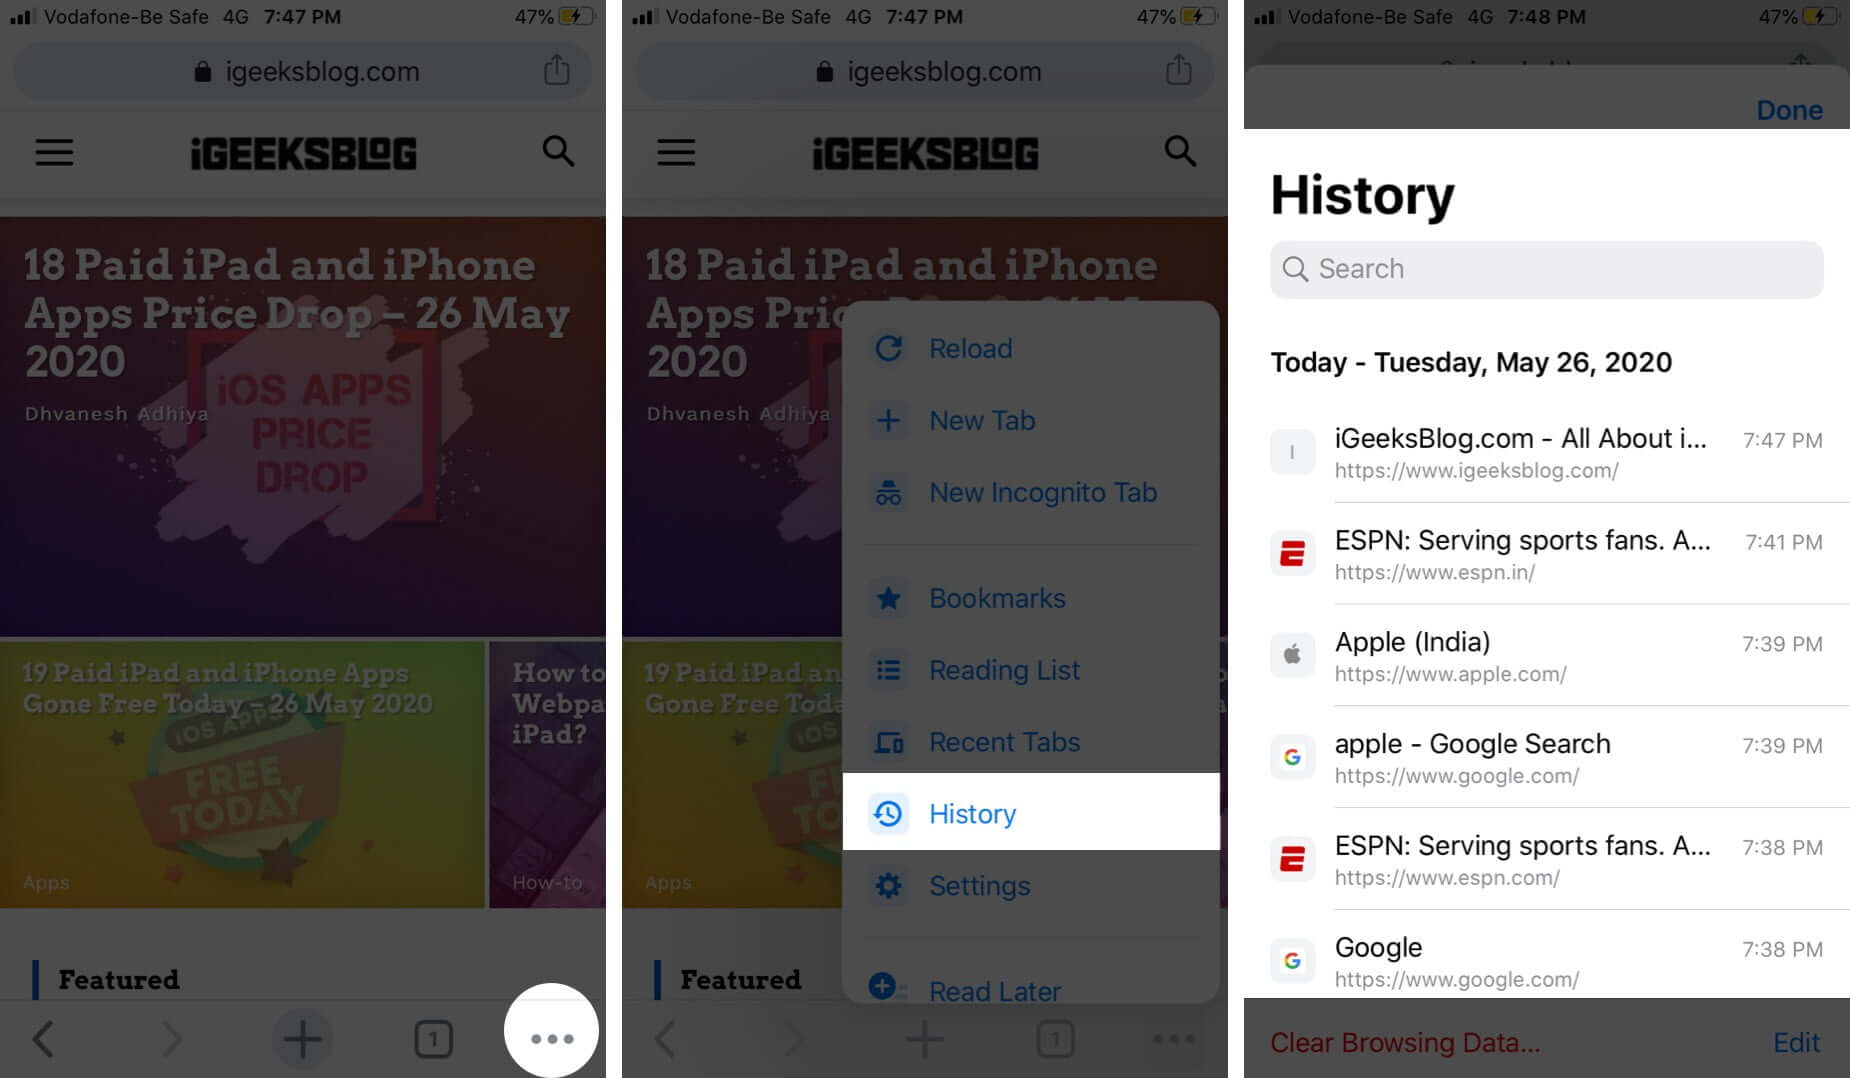 Tap on Three Dots to View Browsing History in Chrome App on iPhone